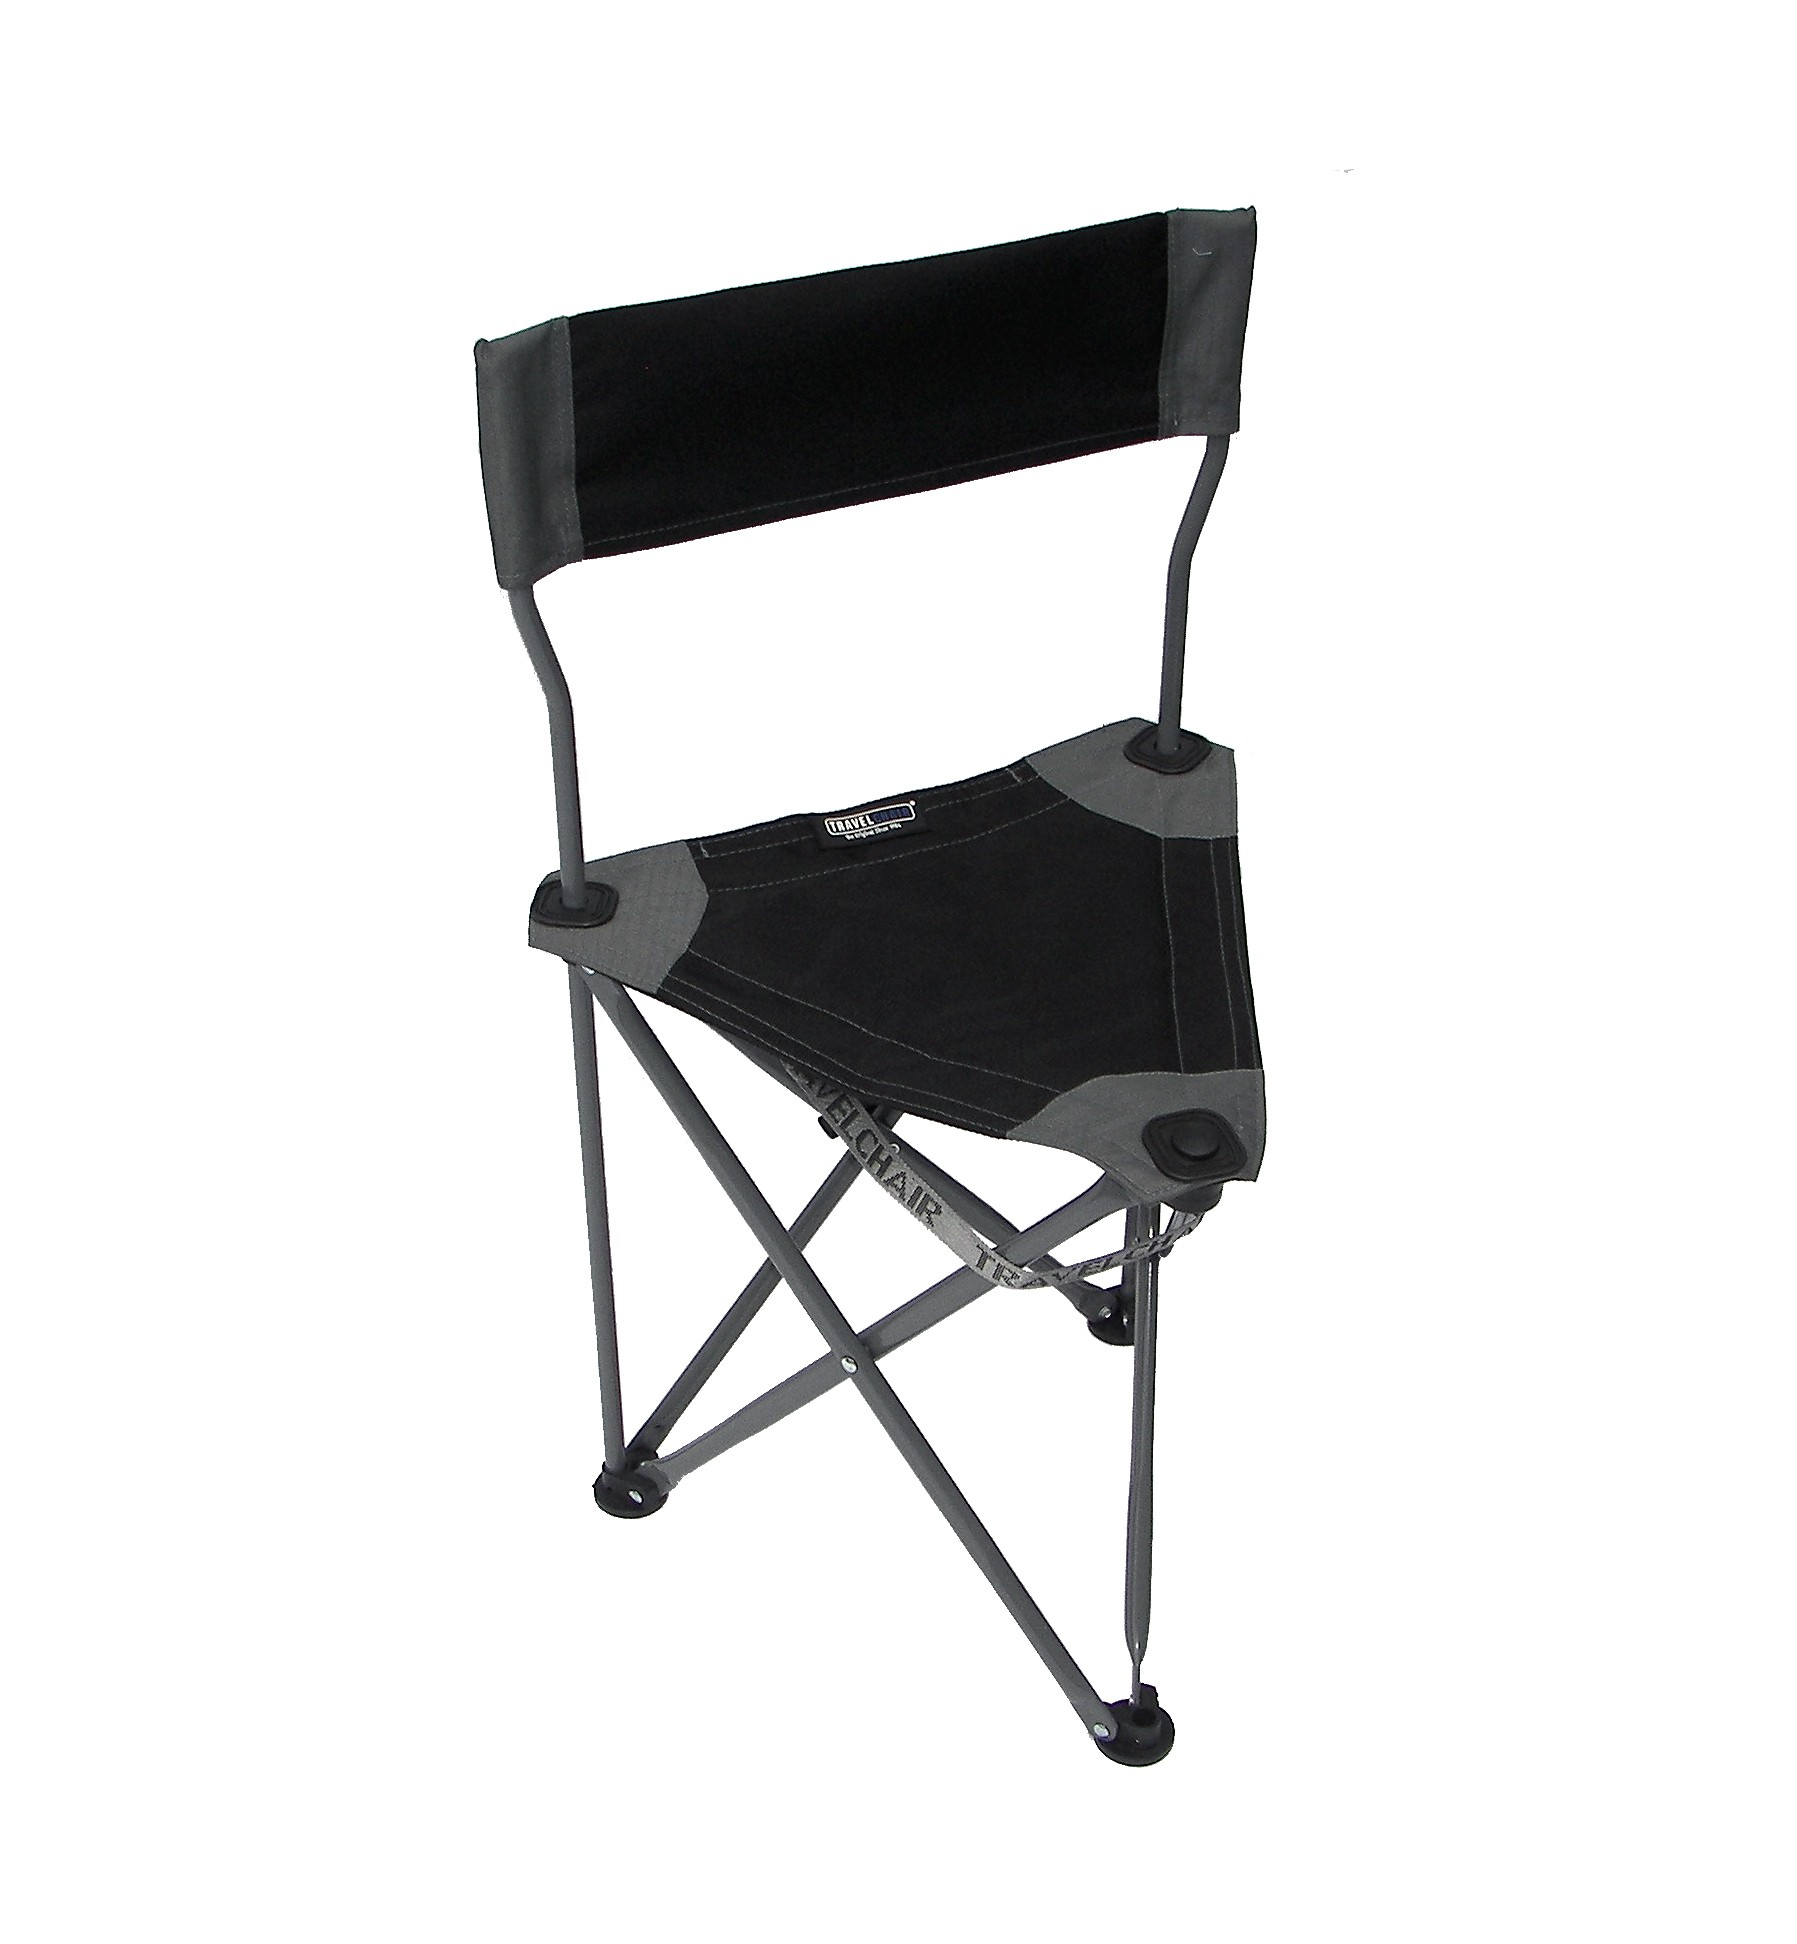 heavy duty folding lawn chairs canada white tufted chair travelchair ultimate slacker 2 1489v2 portable camping stool